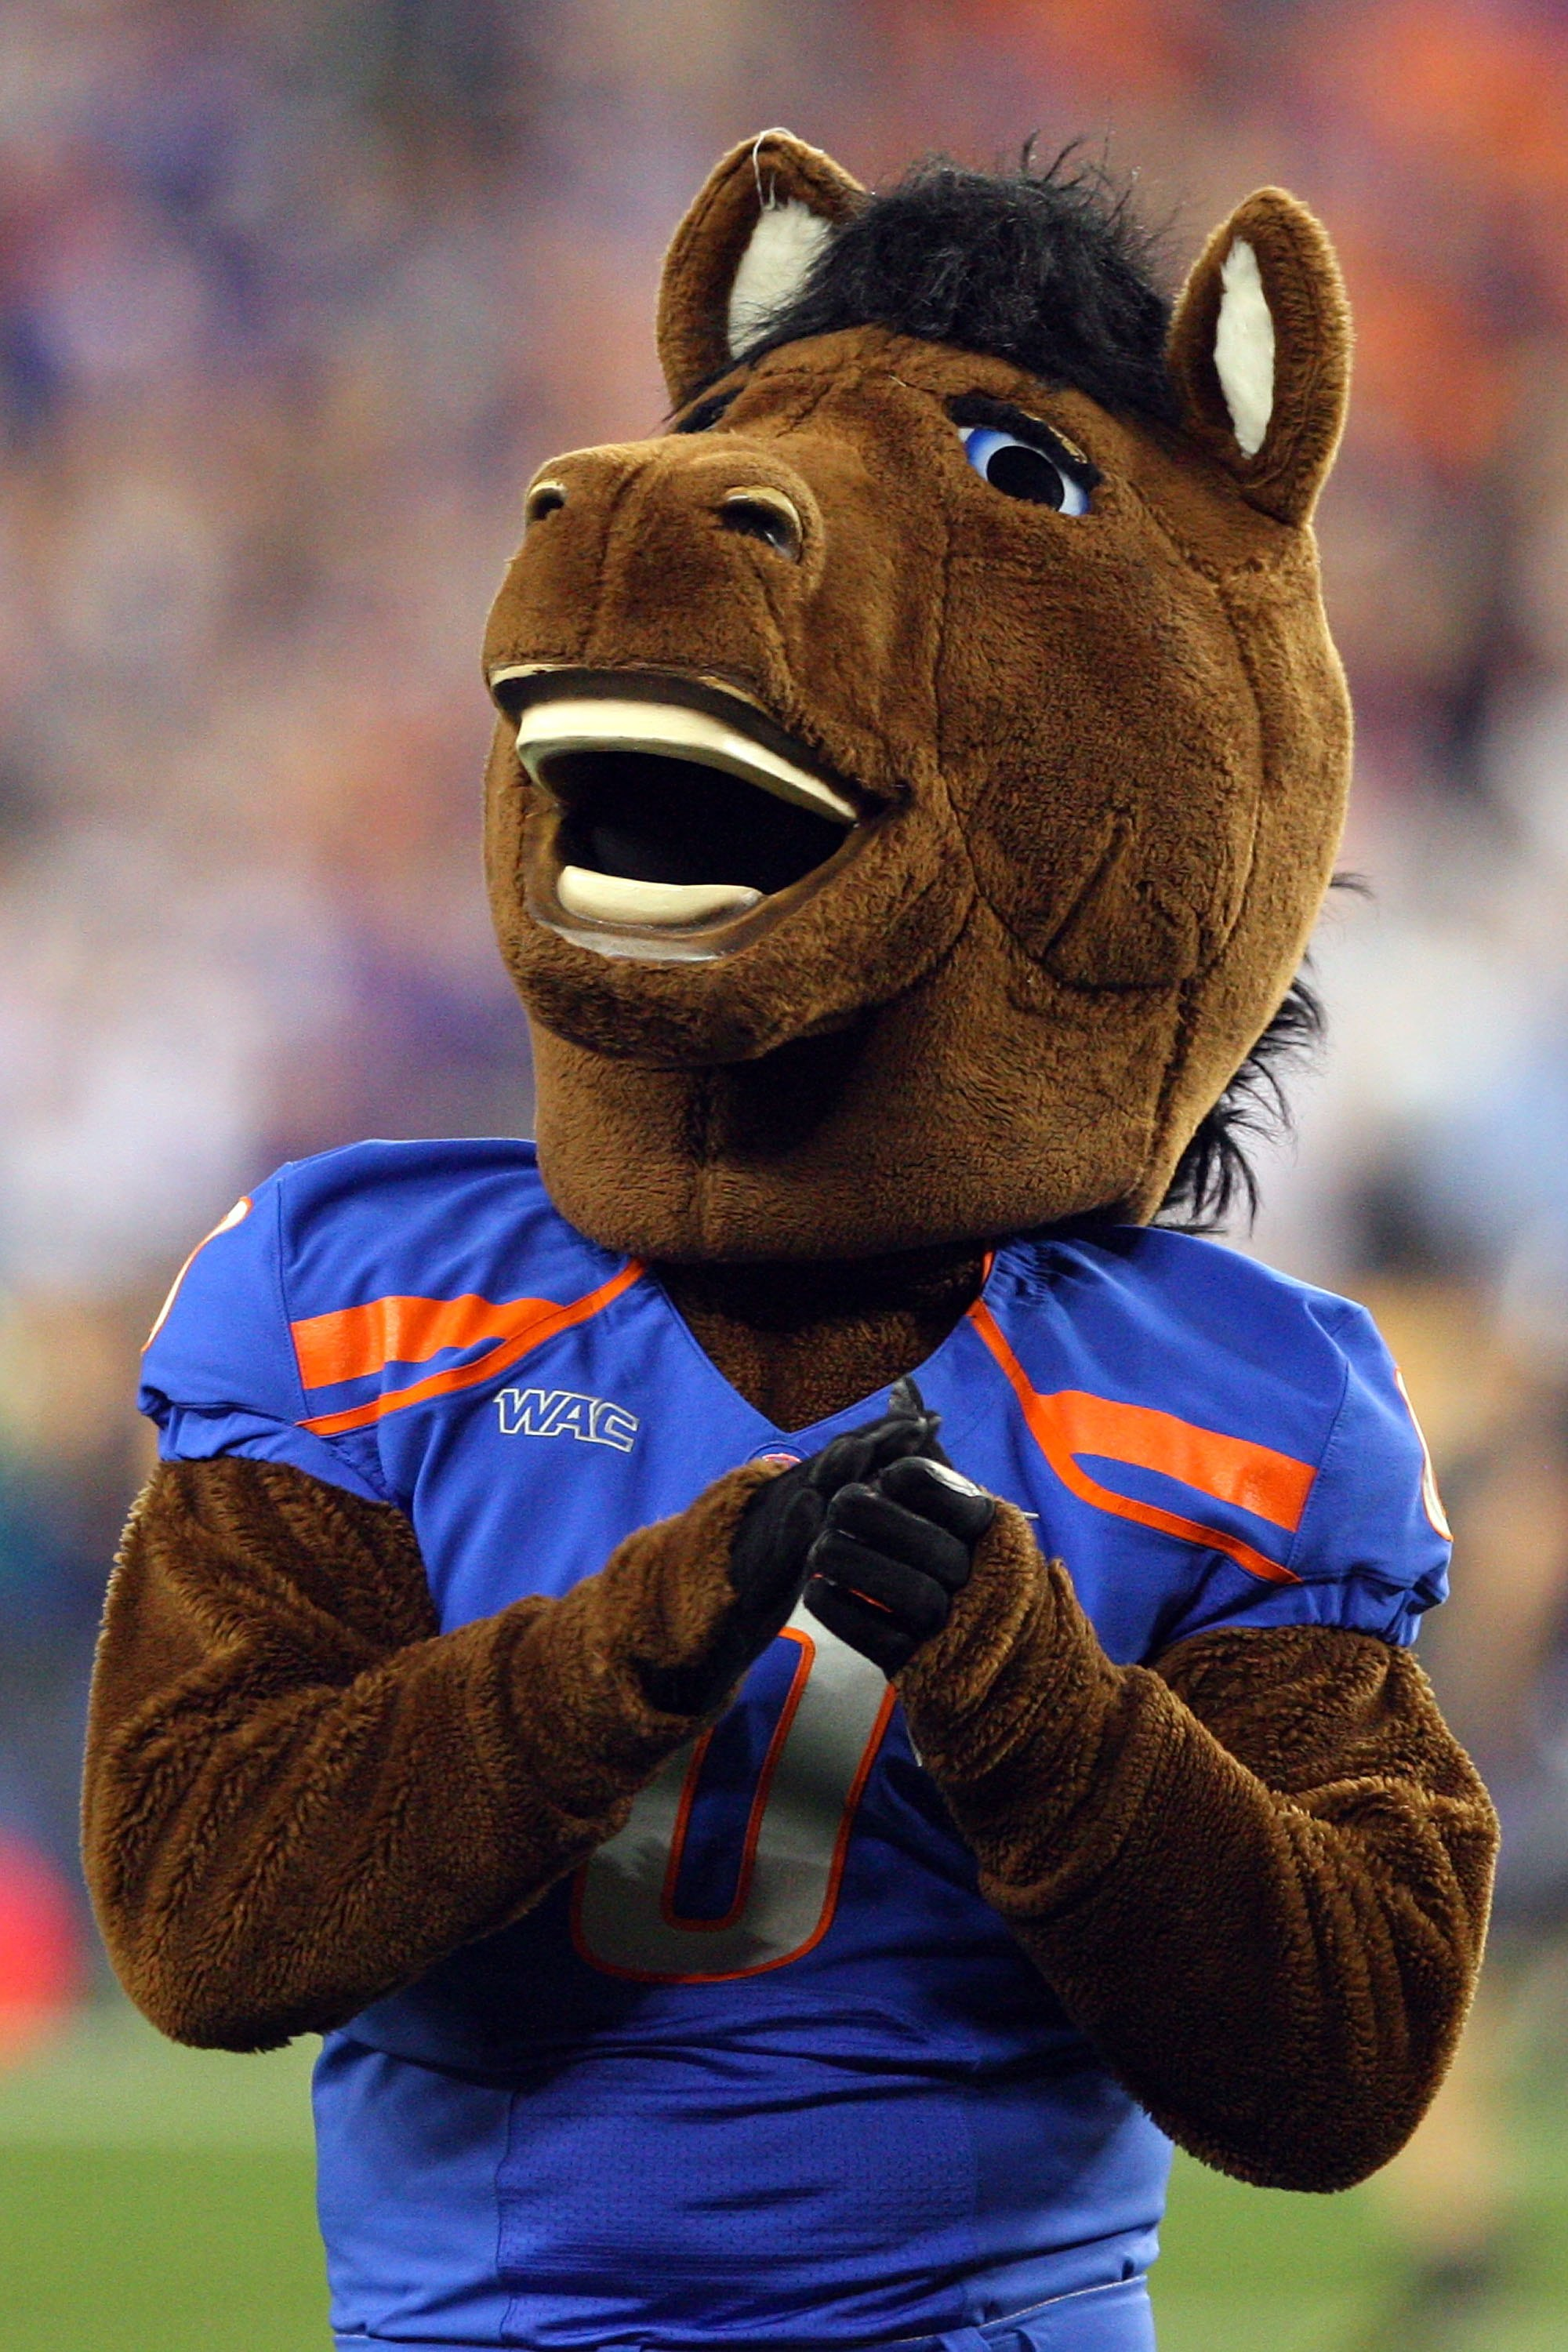 GLENDALE, AZ - JANUARY 04:  The Boise State Broncos mascot performs against the TCU Horned Frogs during the Tostitos Fiesta Bowl at the Universtity of Phoenix Stadium on January 4, 2010 in Glendale, Arizona.  (Photo by Christian Petersen/Getty Images)